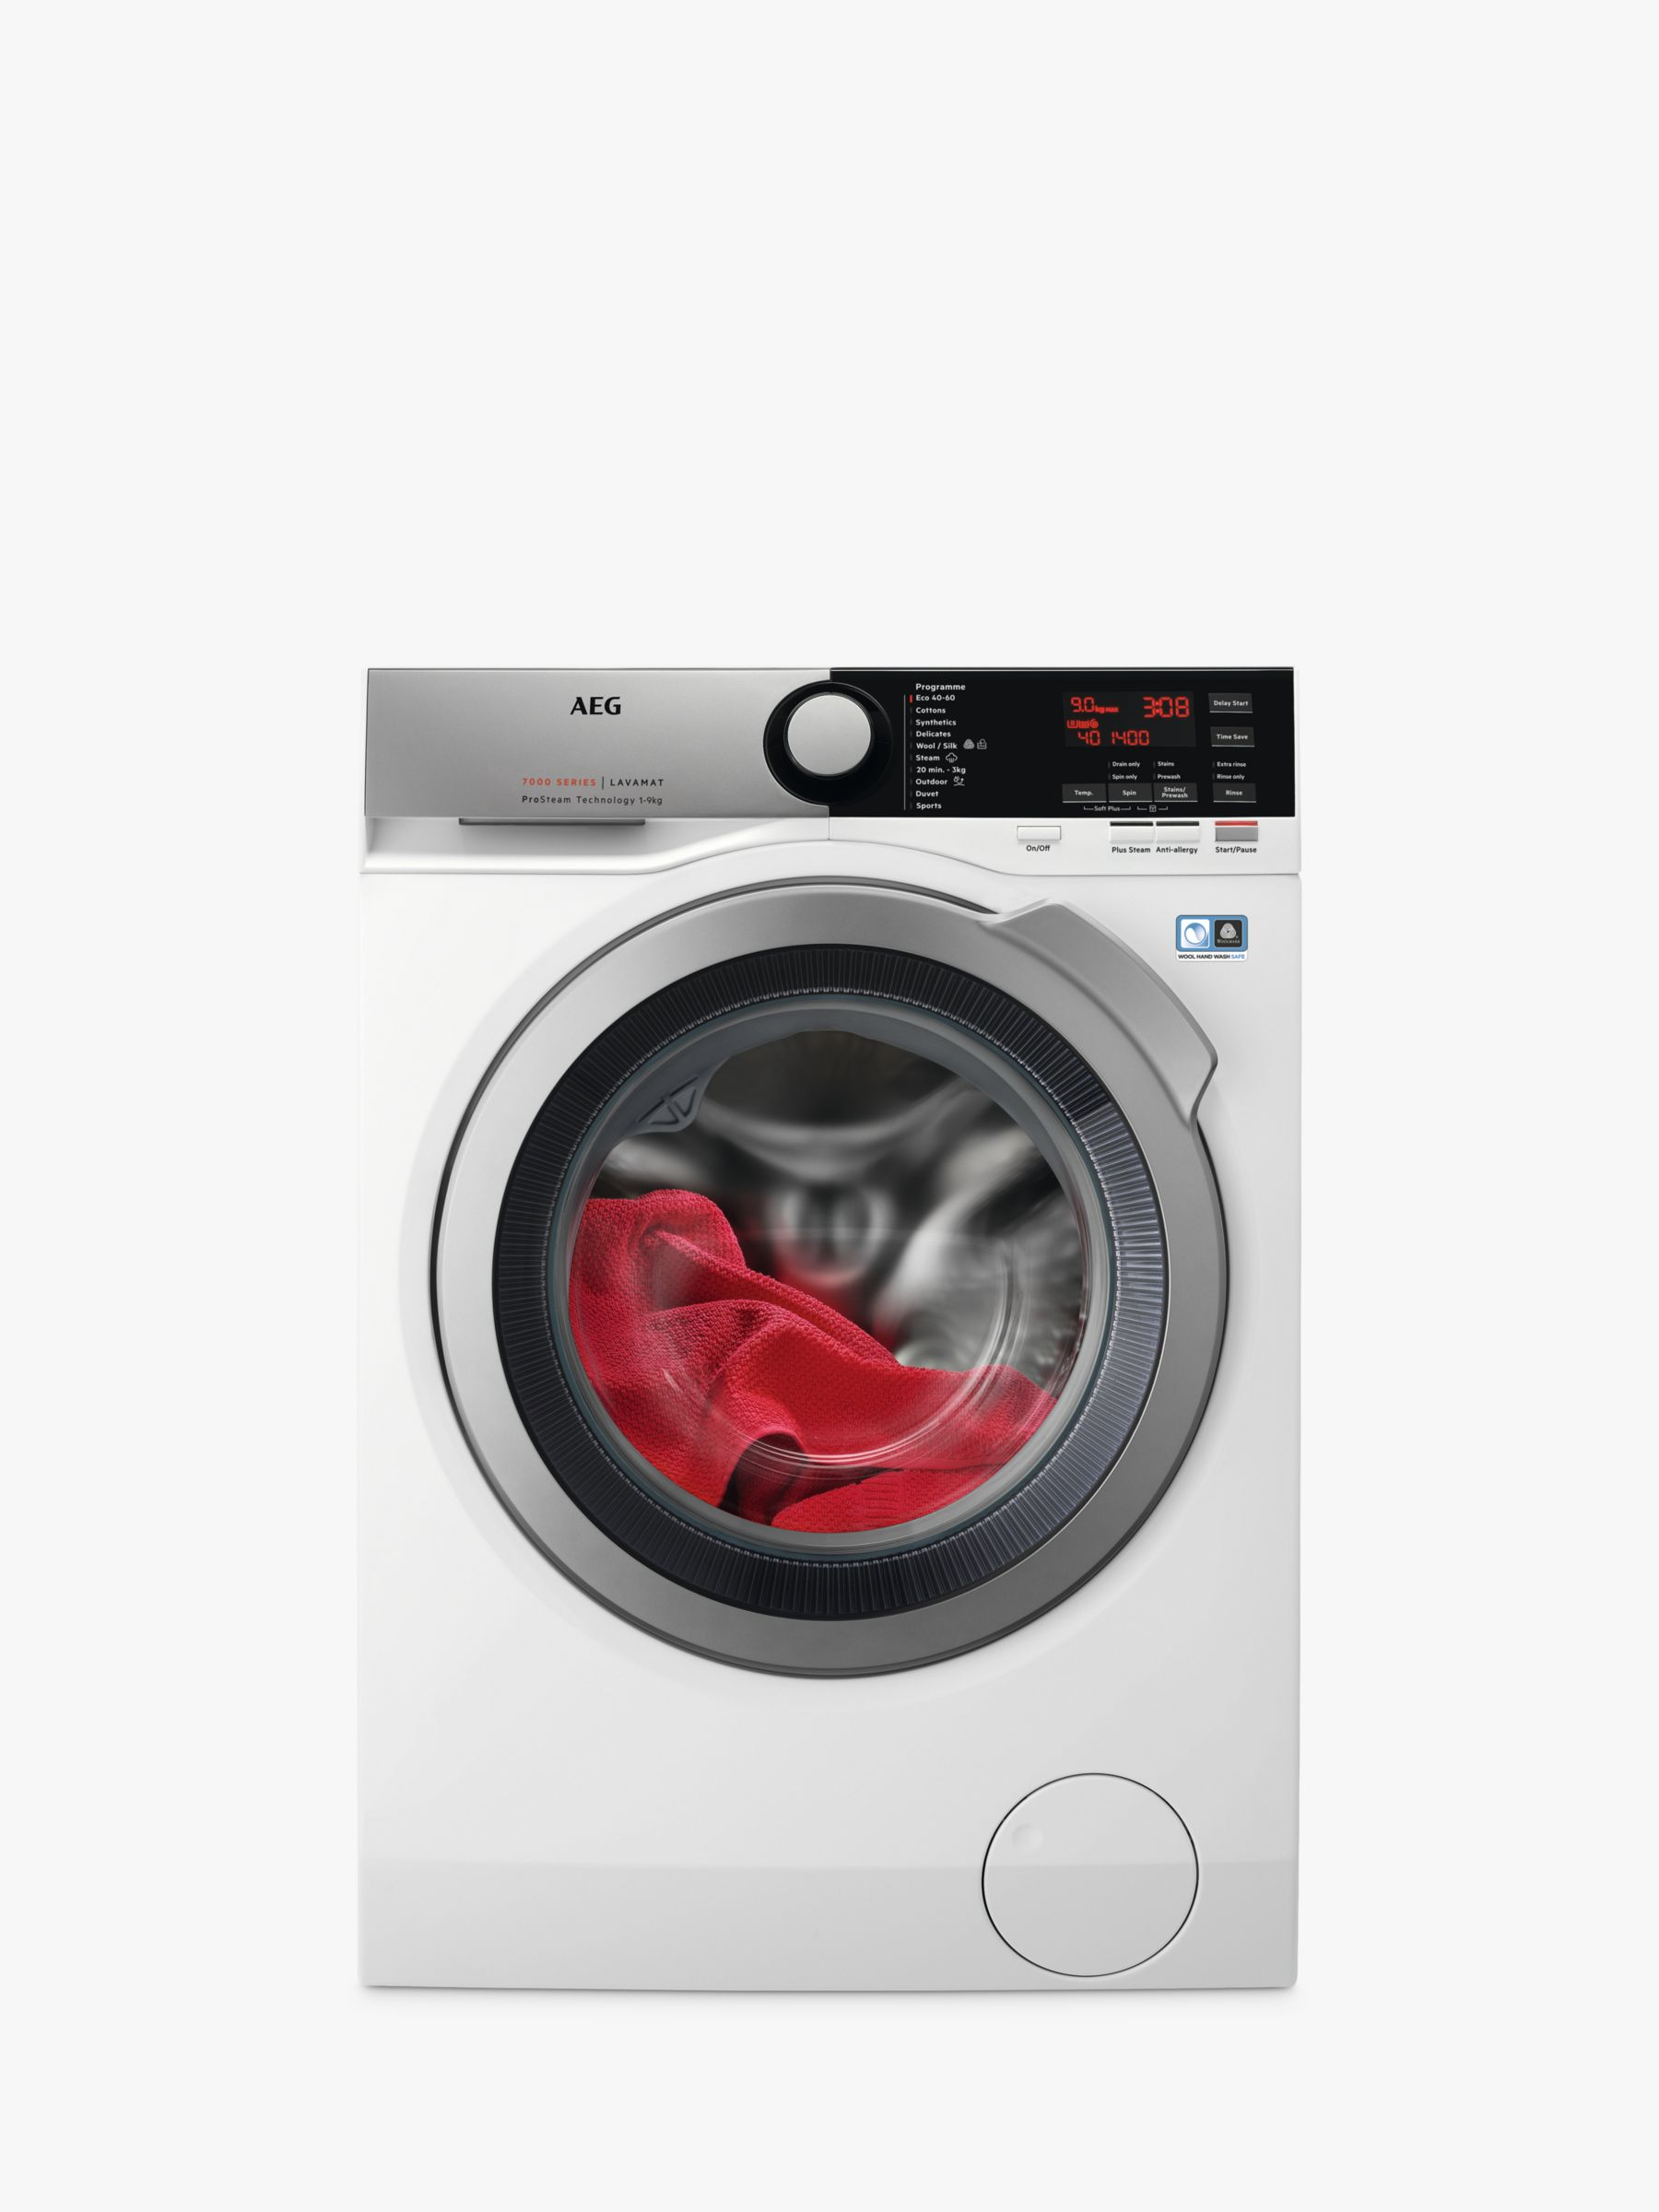 AEG AEG L7FEE945R Freestanding Washing Machine, 9kg Load, A+++ Energy Rating, 1400rpm Spin, White